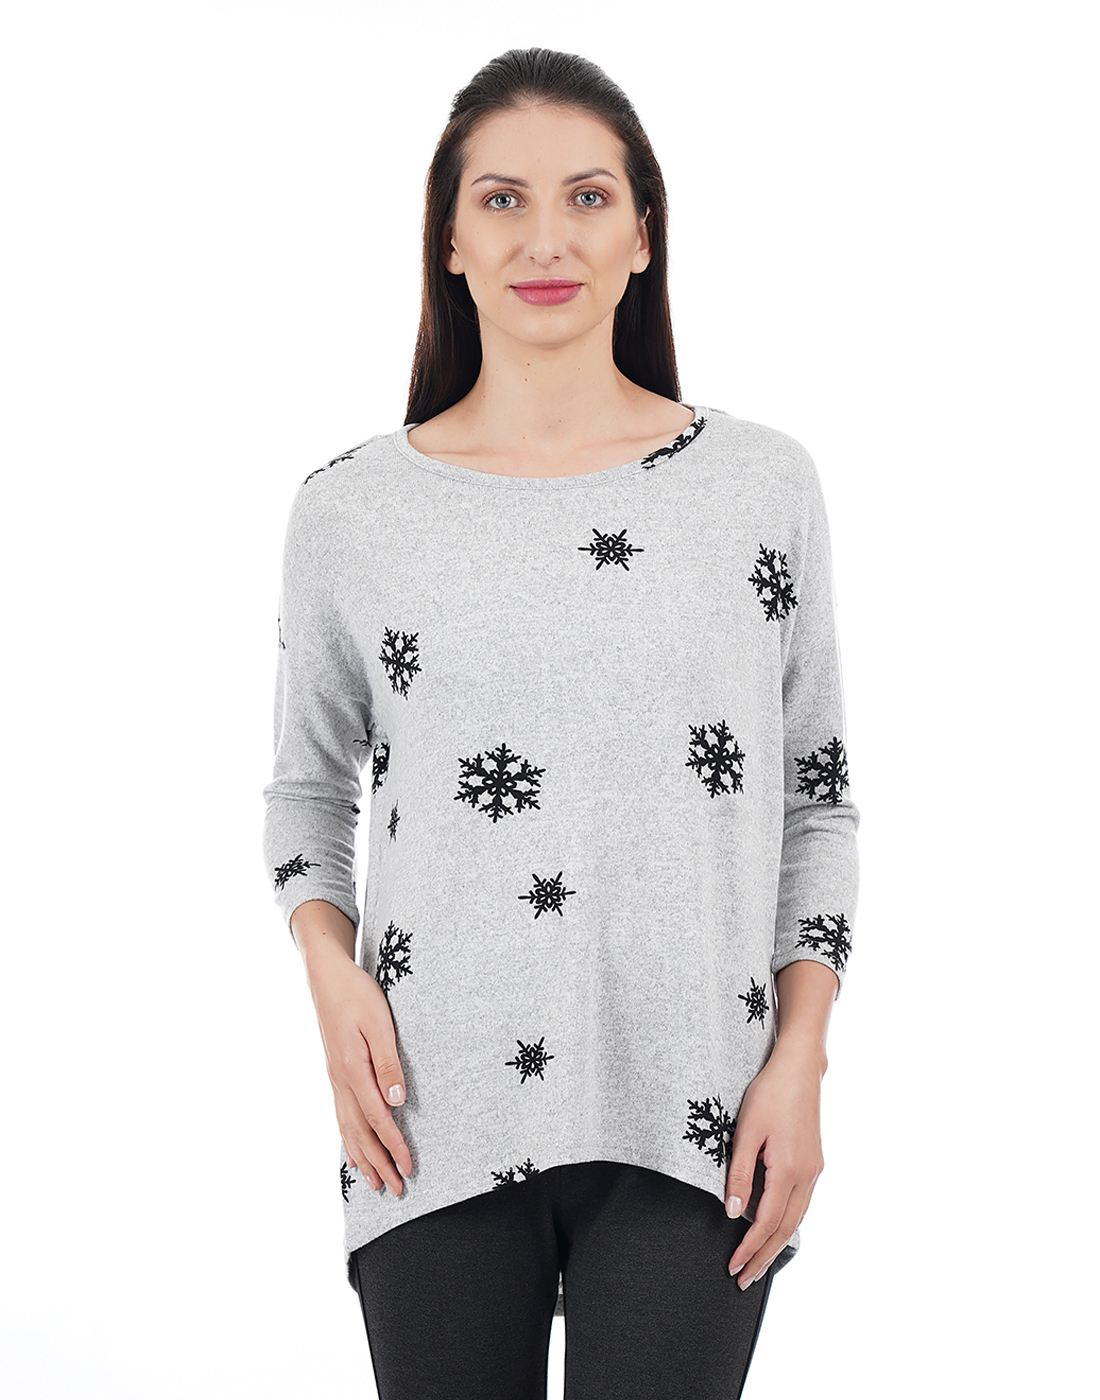 Vero Moda Women Grey Top